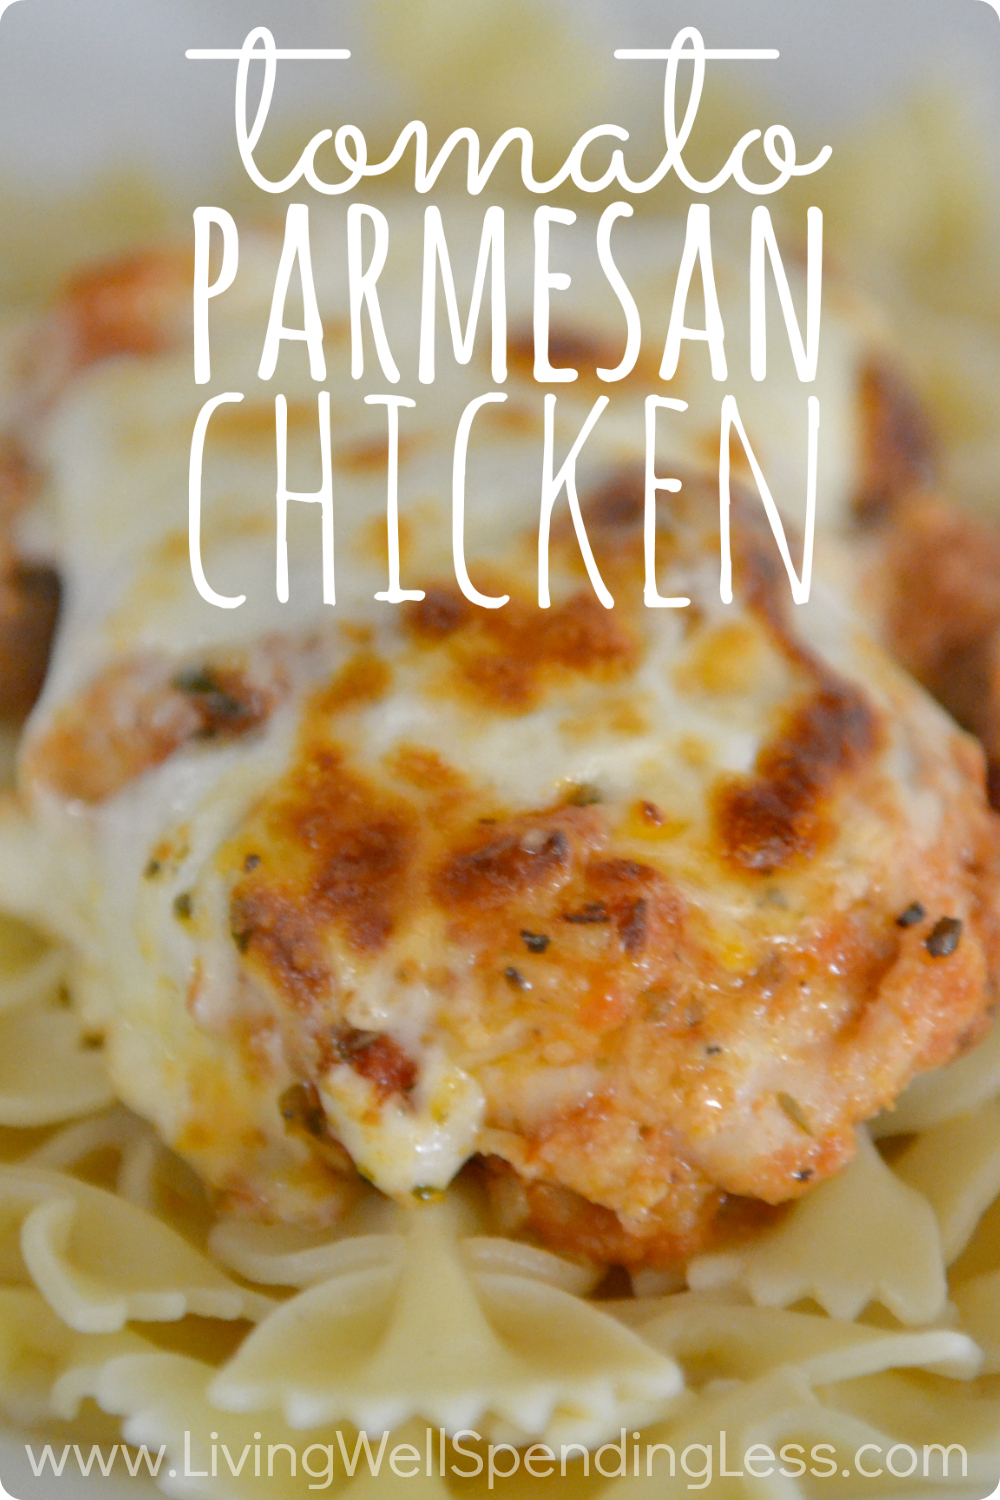 Tomato Parmesan Chicken Vertical 2 - Living Well Spending Less®